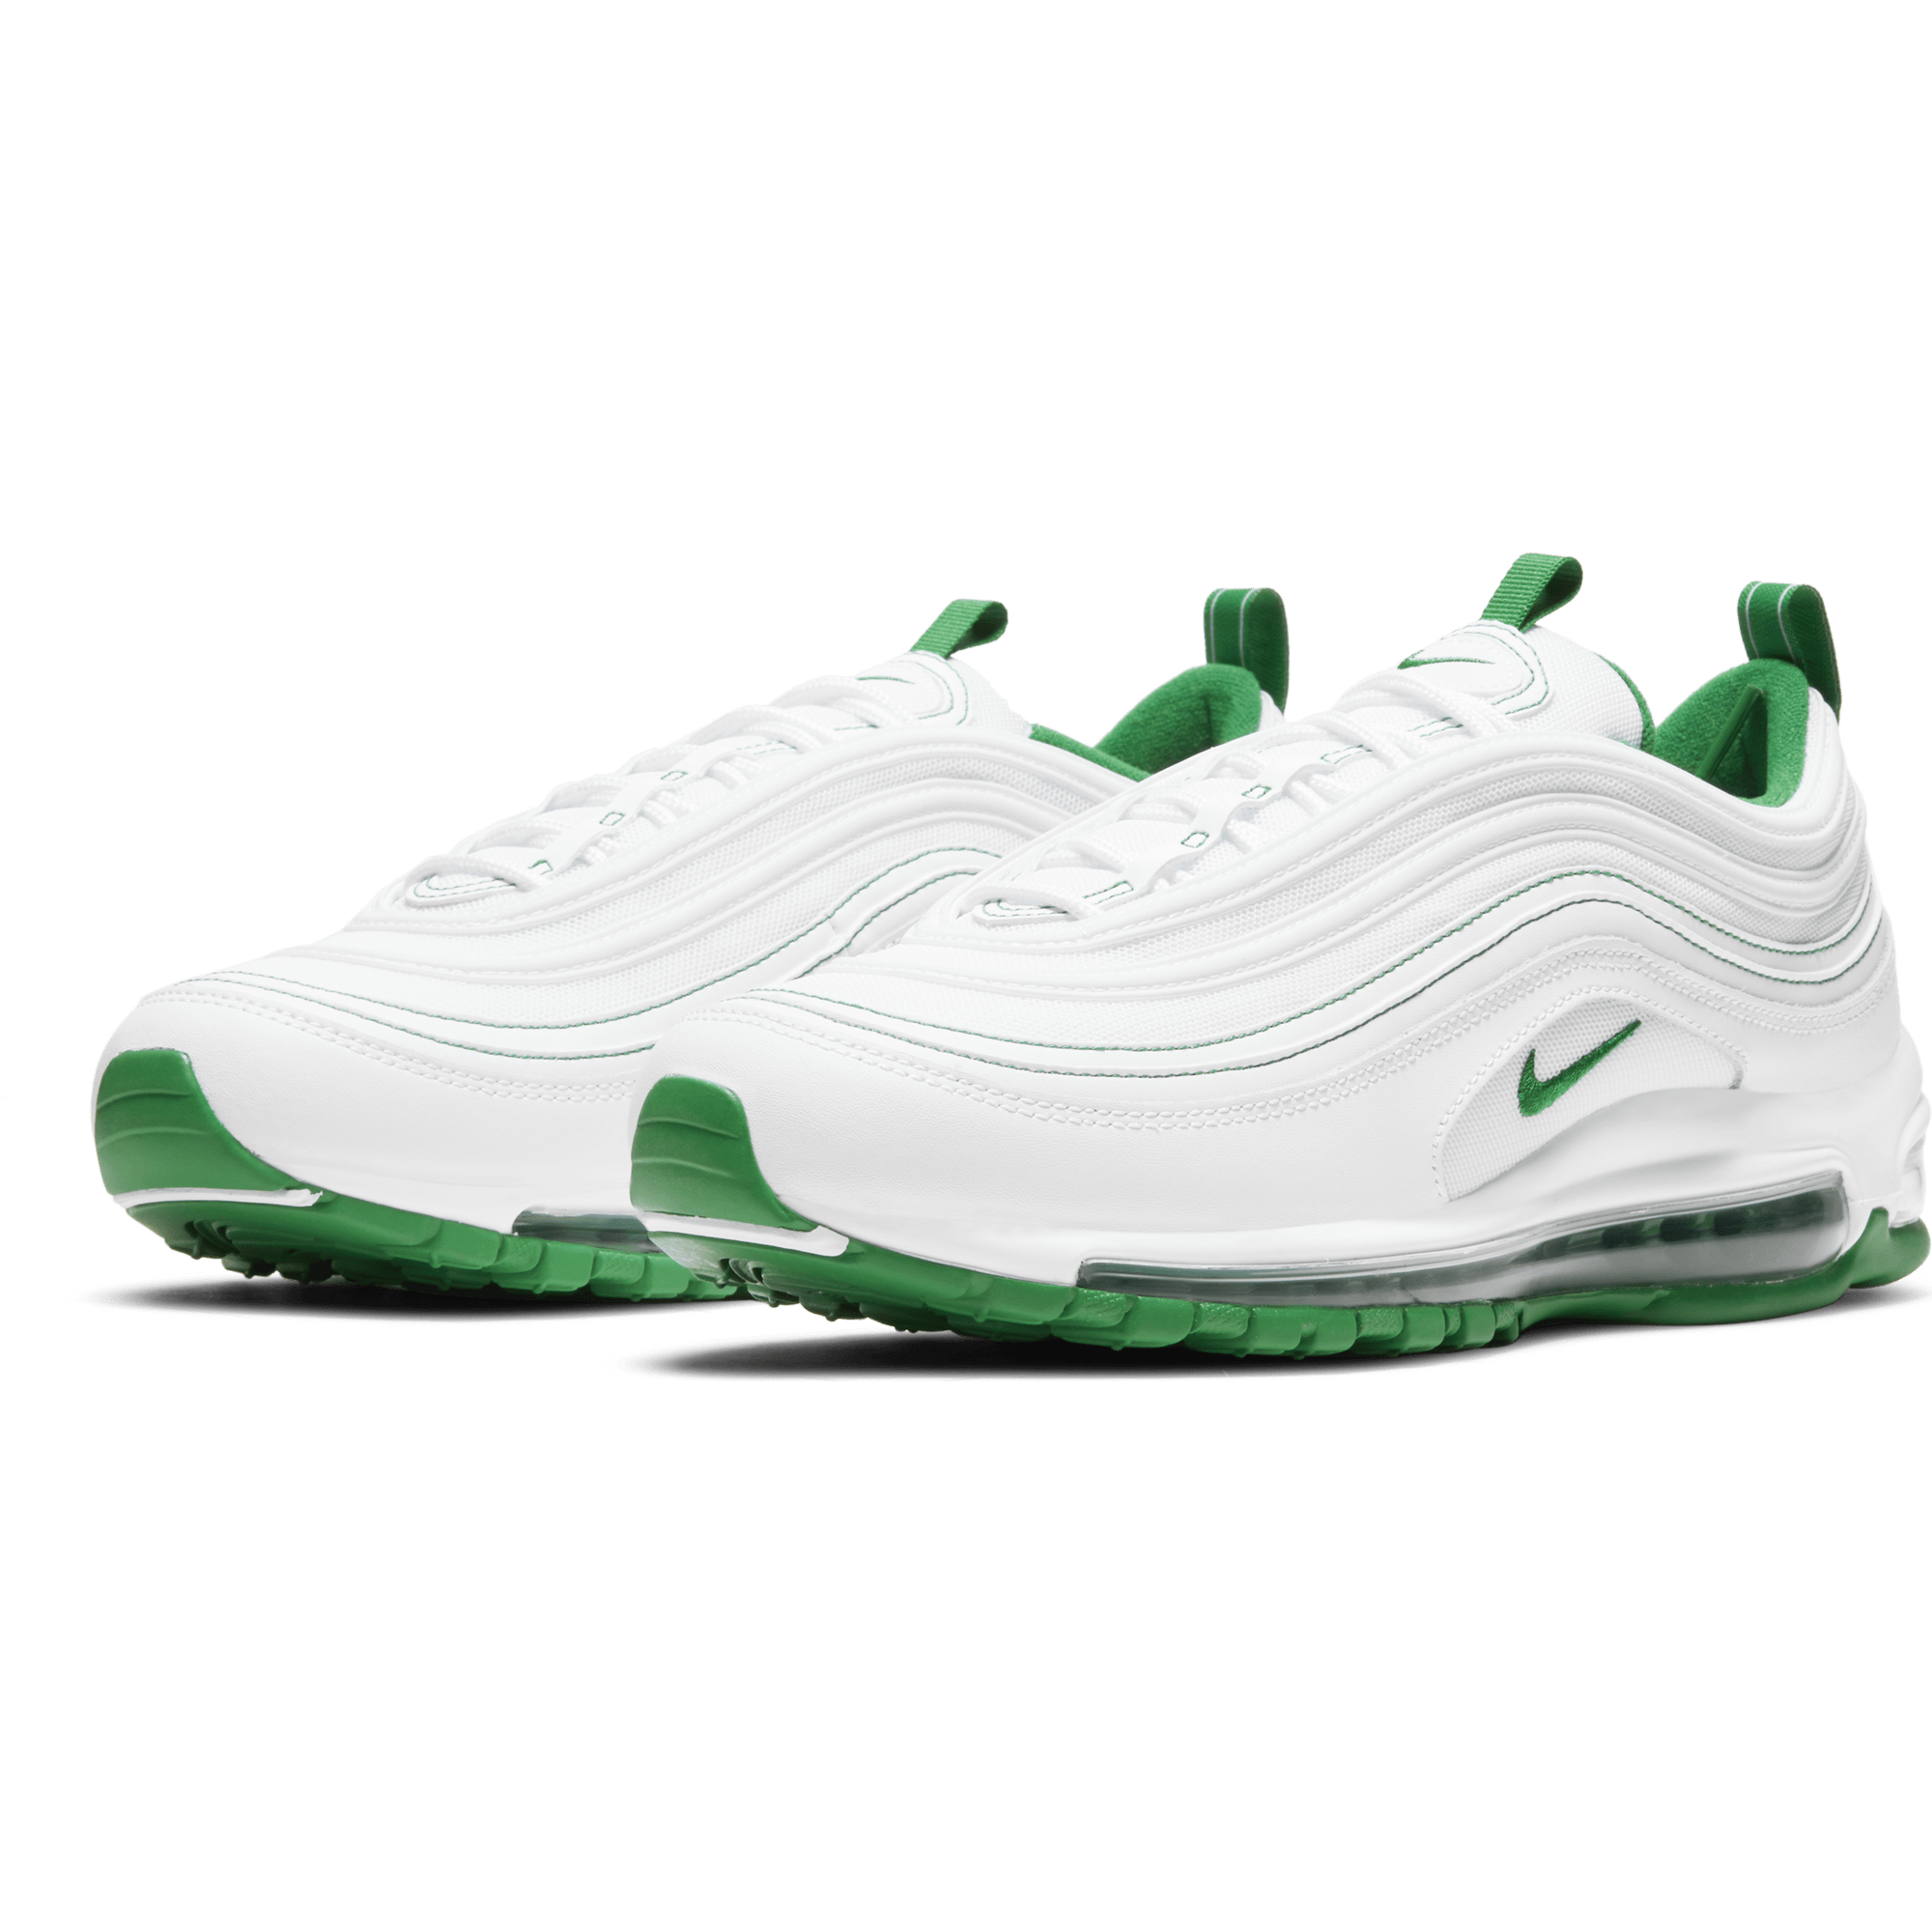 Nike FOOTWEAR Nike Air Max 97 - Men's